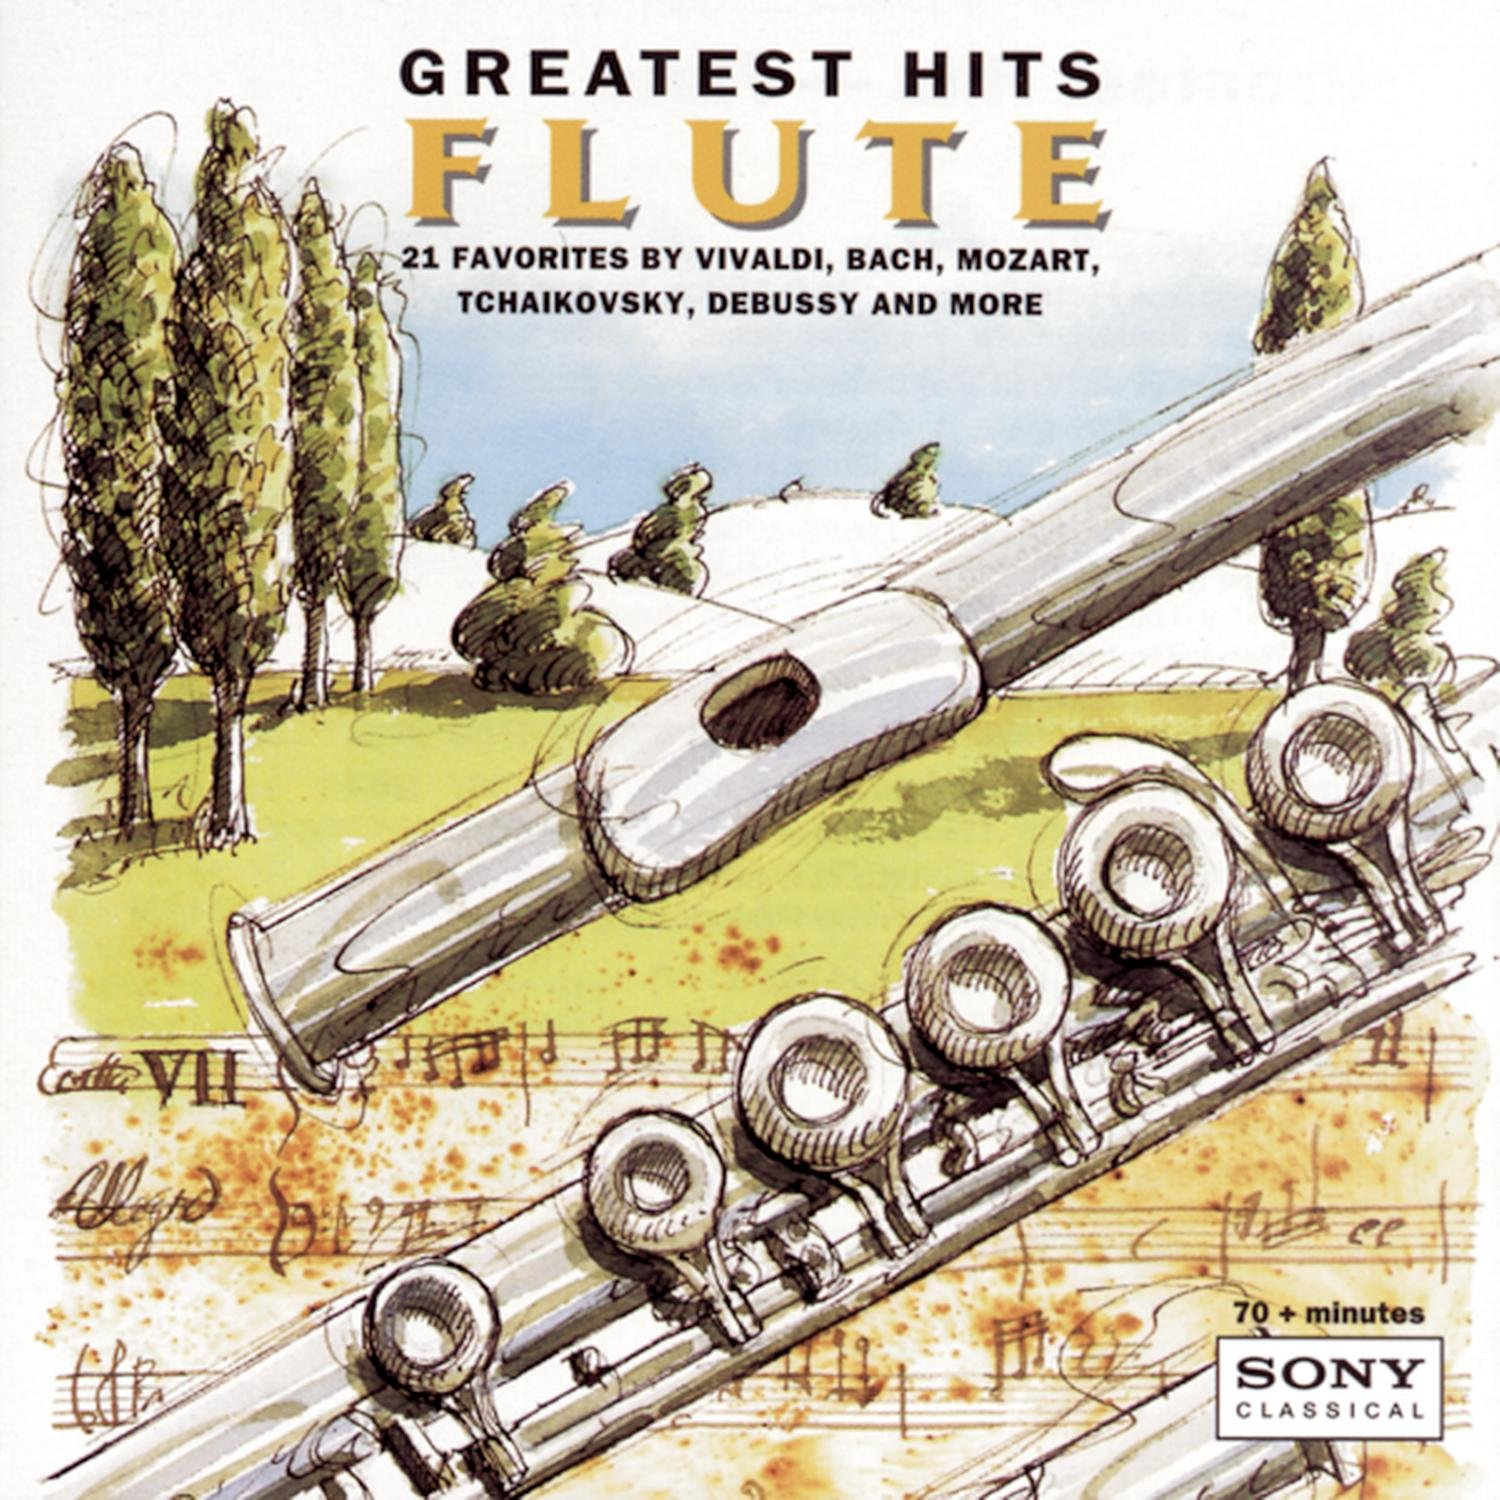 Greatest Hits - Flute by Sony Classical